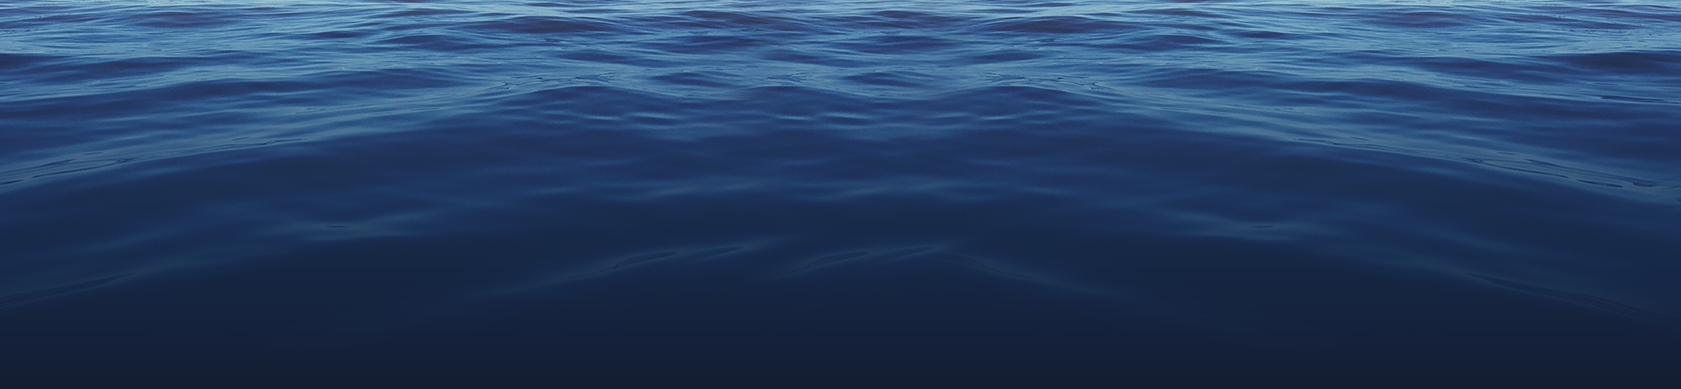 Calm dark blue water